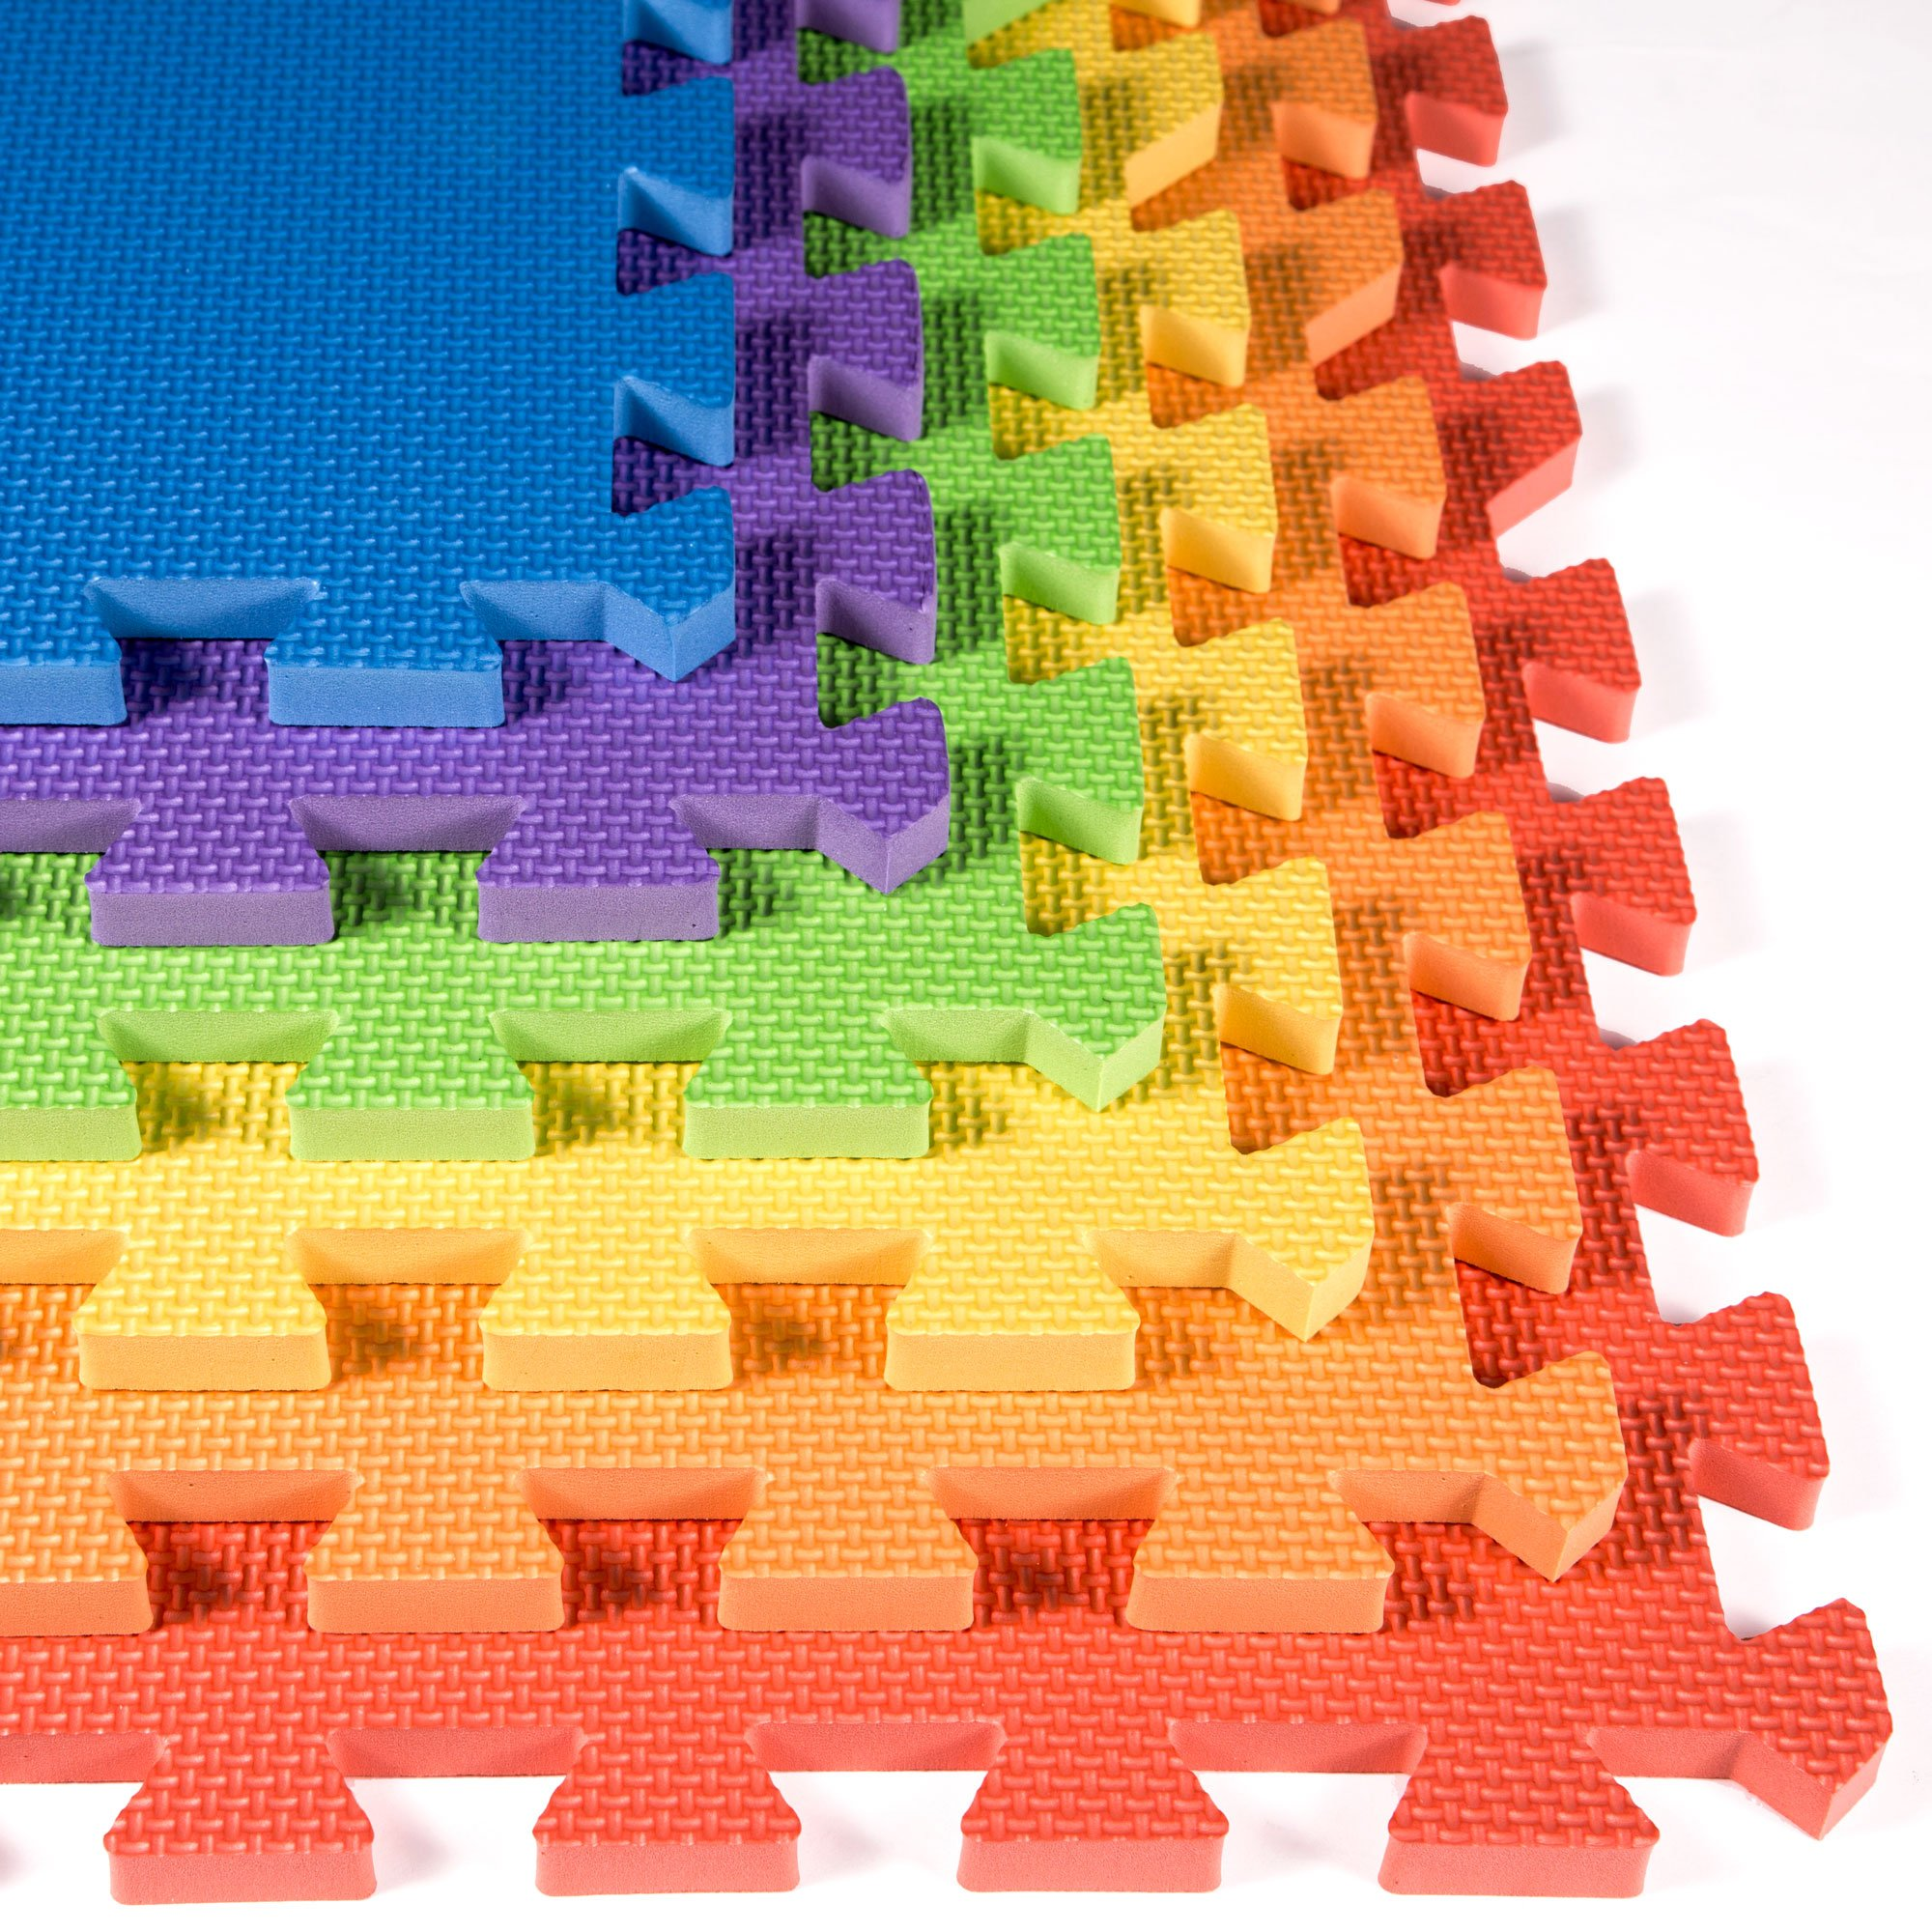 IncStores - Rainbow Foam Tiles (12 Pack) - 2ft x 2ft Interlocking Foam Children's Portable Playmats by IncStores (Image #6)